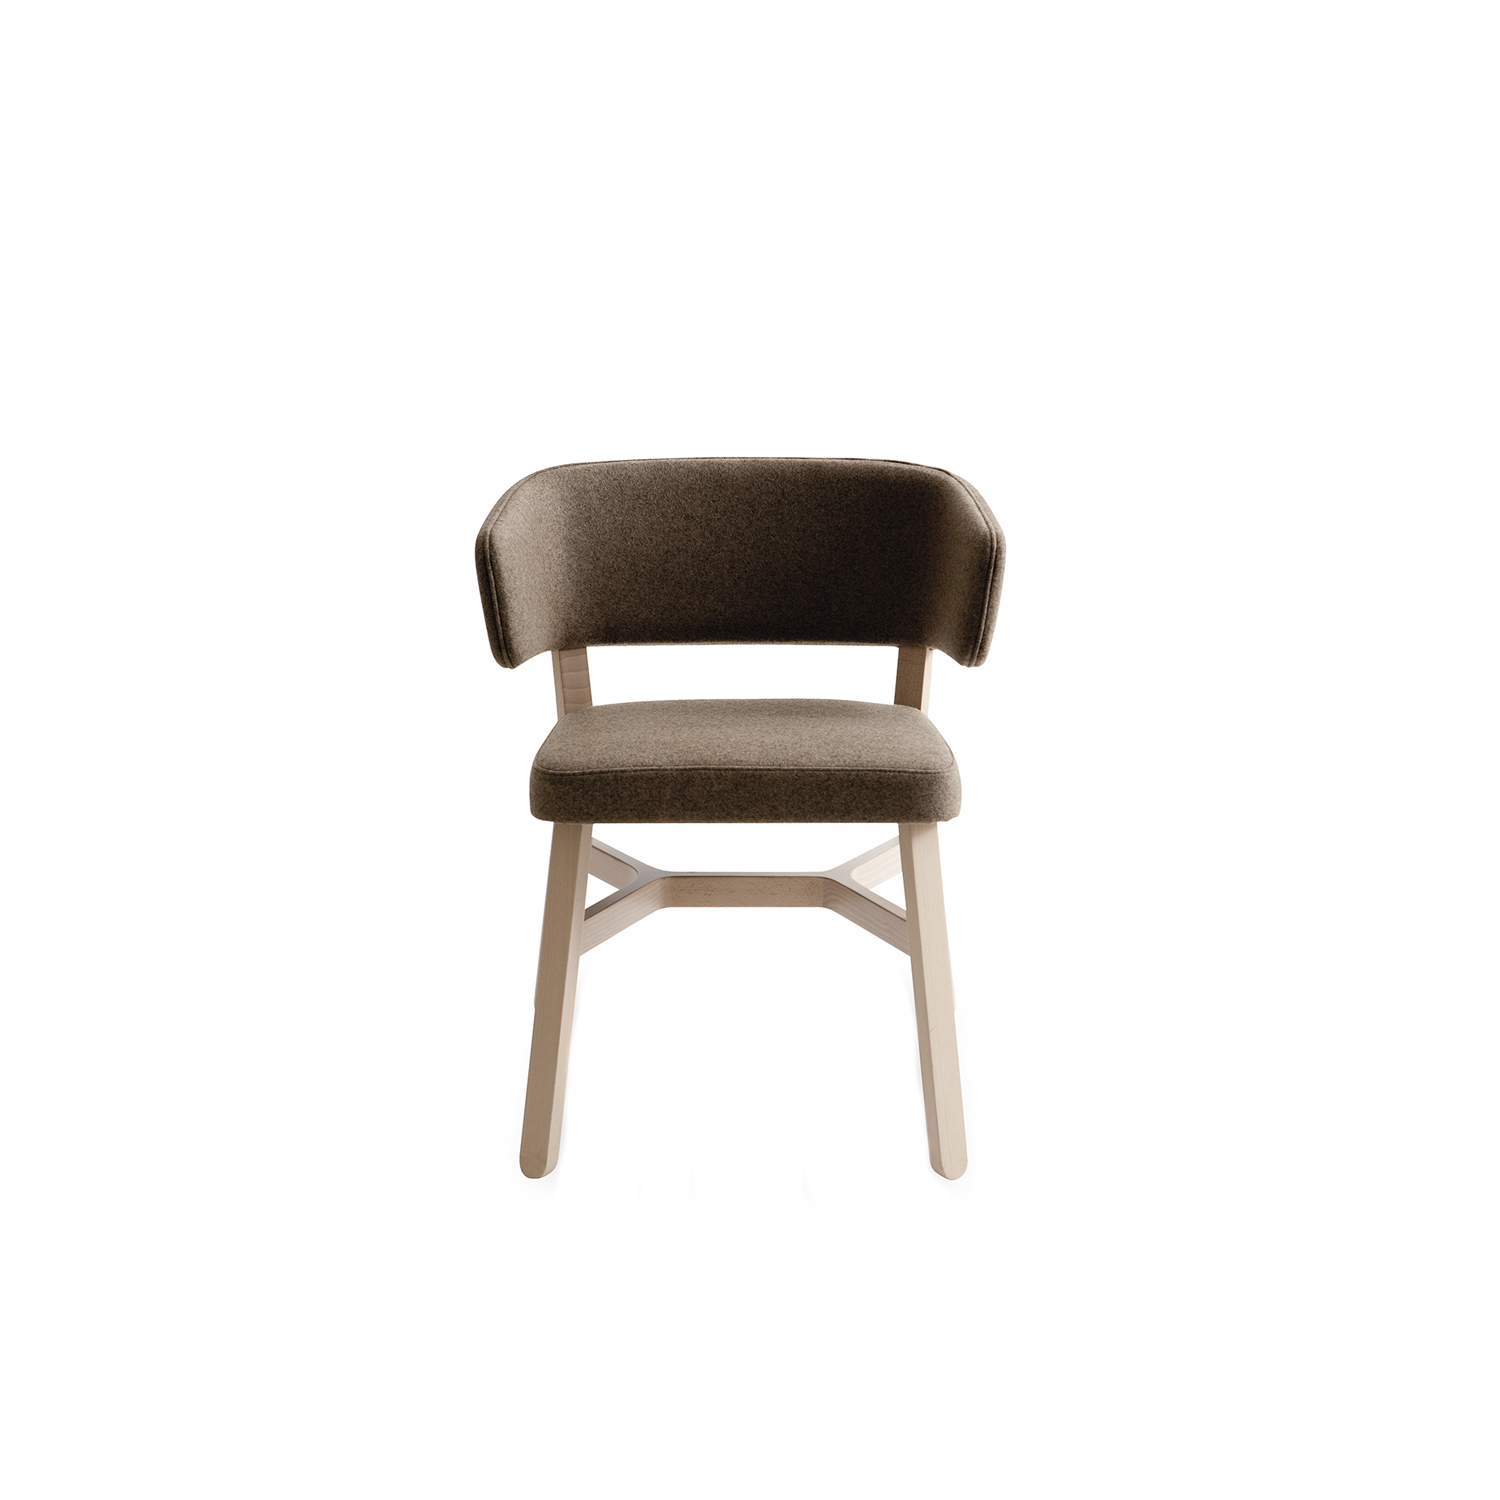 Croissant Armchair - Side and armchair in stained or lacquered beechwood, with upholstered seat and back. A crucial thought. A refined sense of belonging unites the entire Croissant collection, a recurring design, the crosspiece which distinguishes all the seating, as well as the tables. Chair, armchair, lounge chair, stools, sofa, pouffe and benches in stained or lacquered beechwood, with upholstered seat and back. Tables with frame in stained or lacquered beechwood and top in lacquered or laminated mdf or compact laminate.  | Matter of Stuff